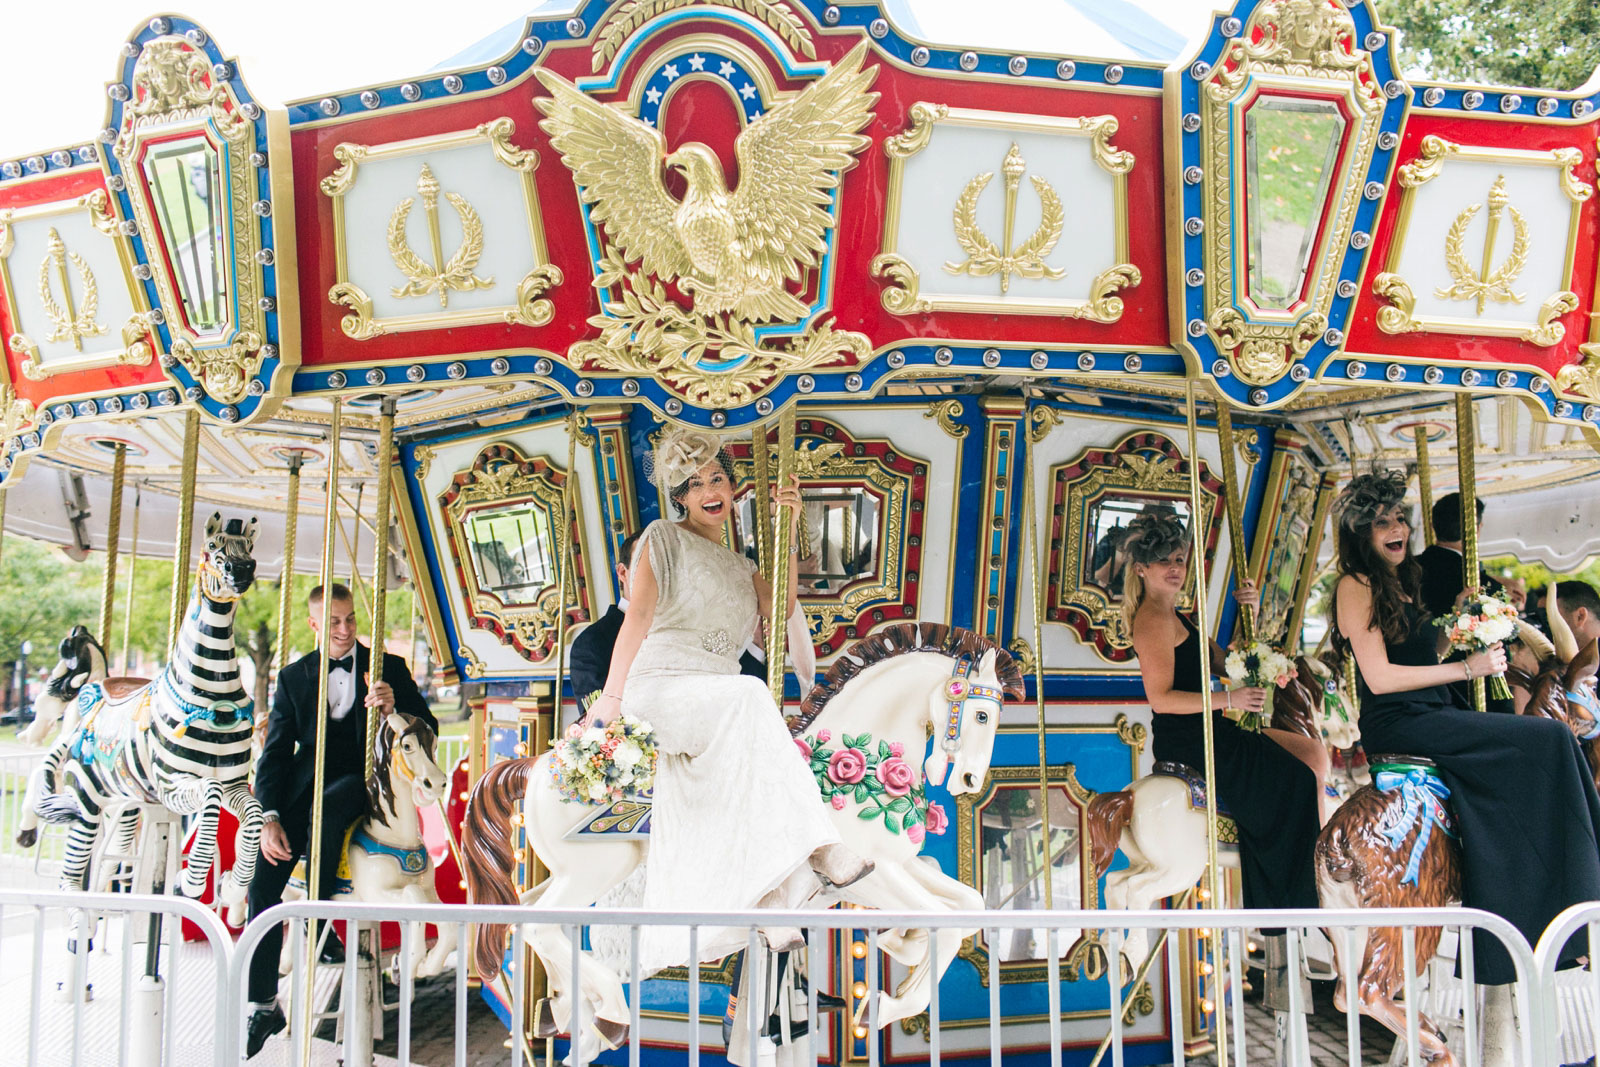 bride having fun riding on pony on carousel during bridal party portraits at boston common